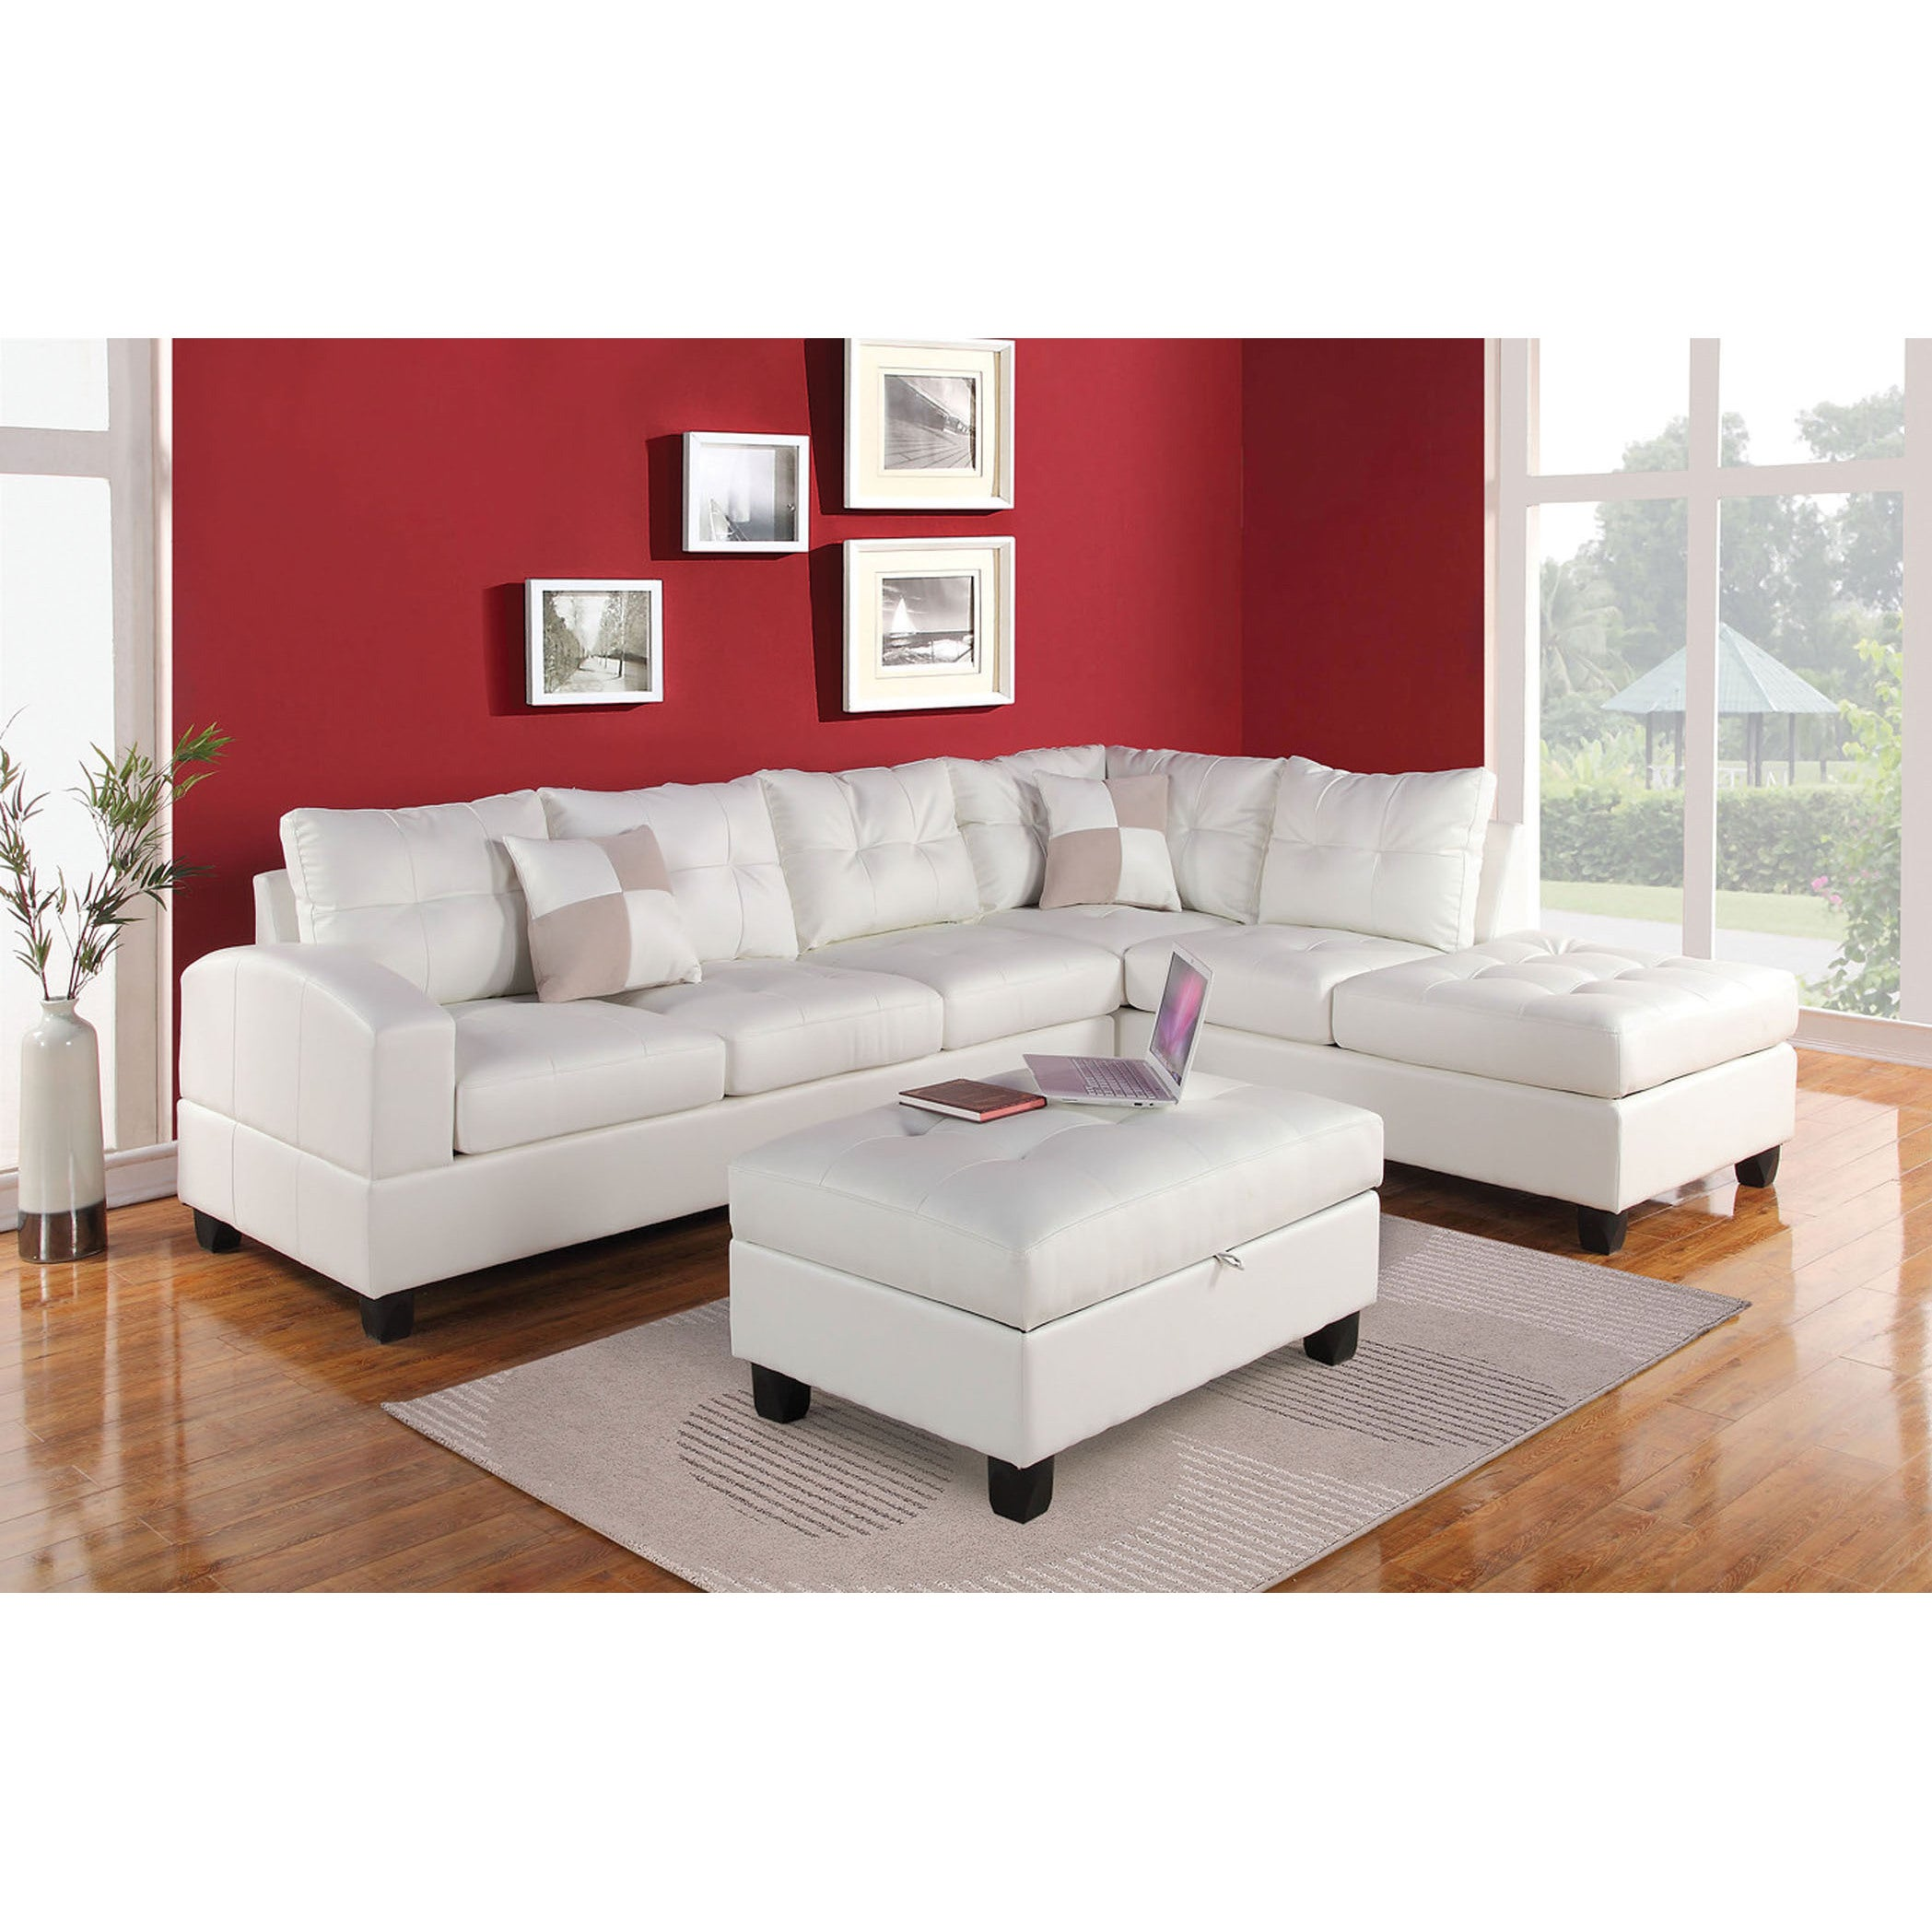 Shop Kiva Bonded Leather Match Sectional Sofa - Free Shipping Today ...